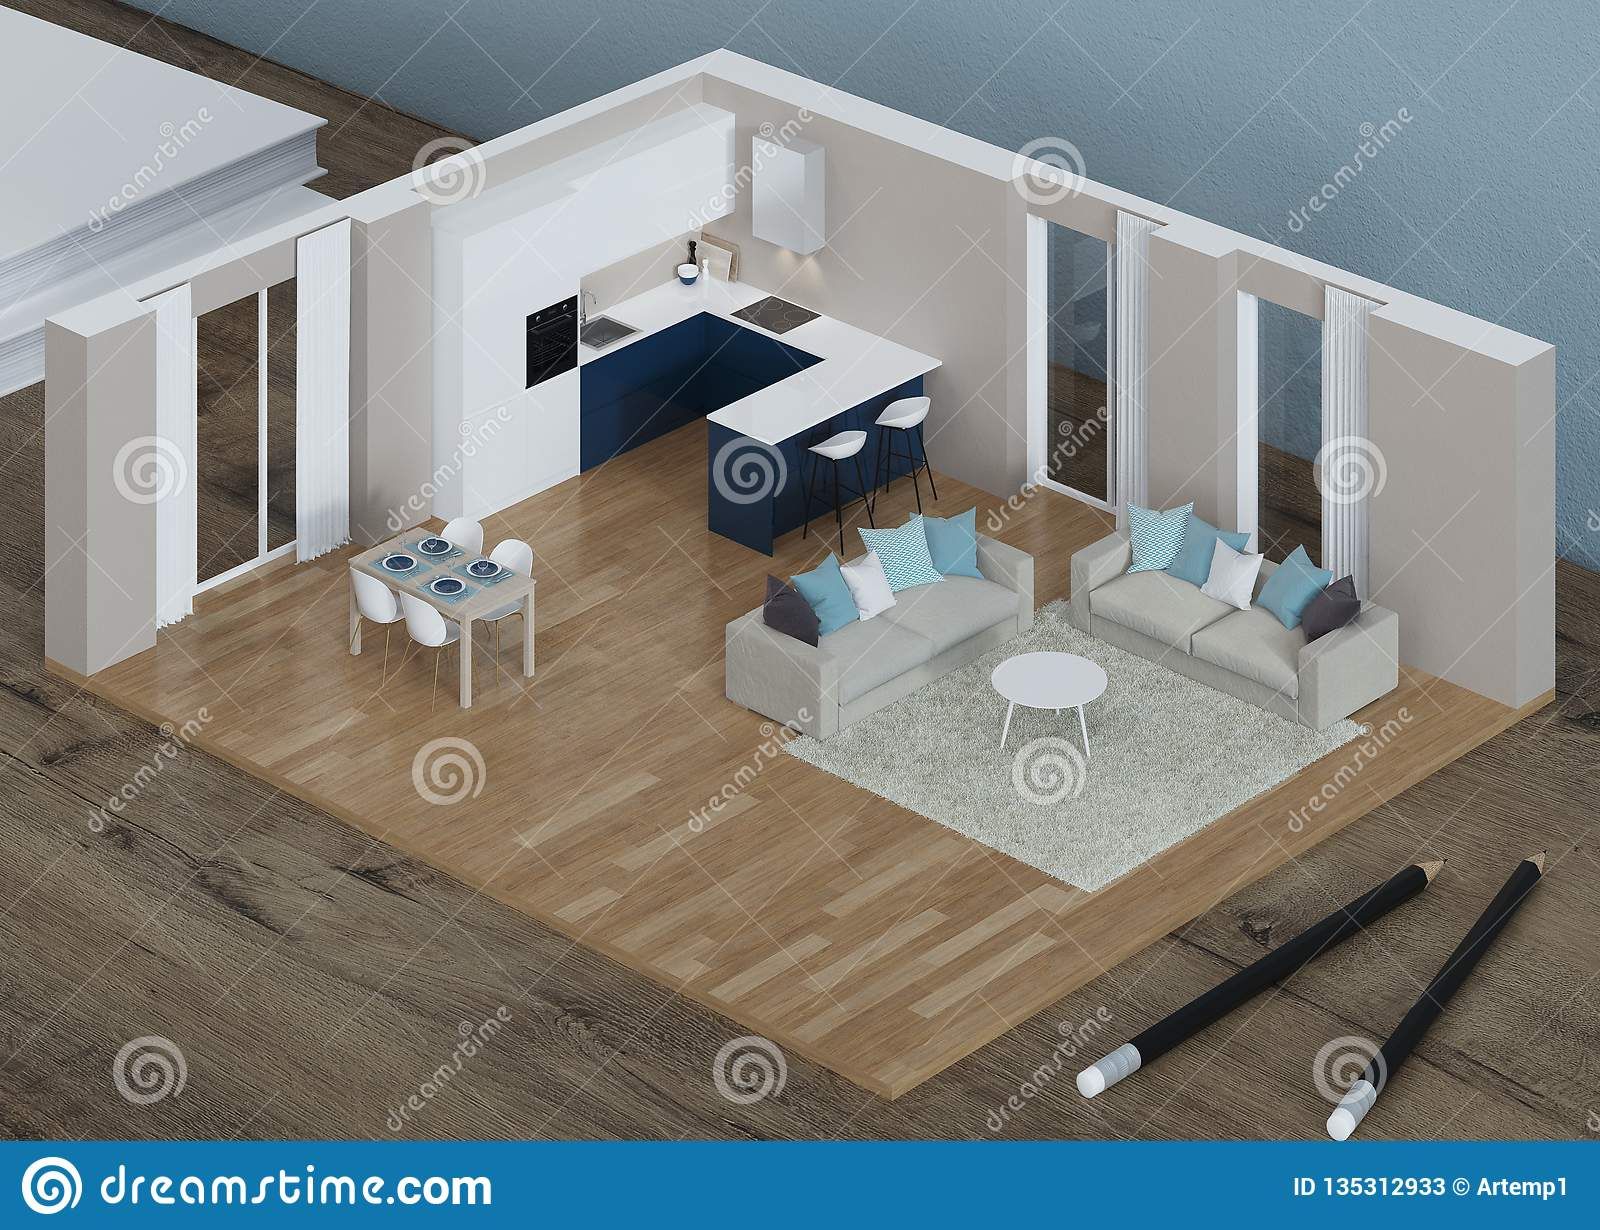 Interior Model On The Desktop 3d Modeling Stock Illustration Illustration Of House Design 135312933